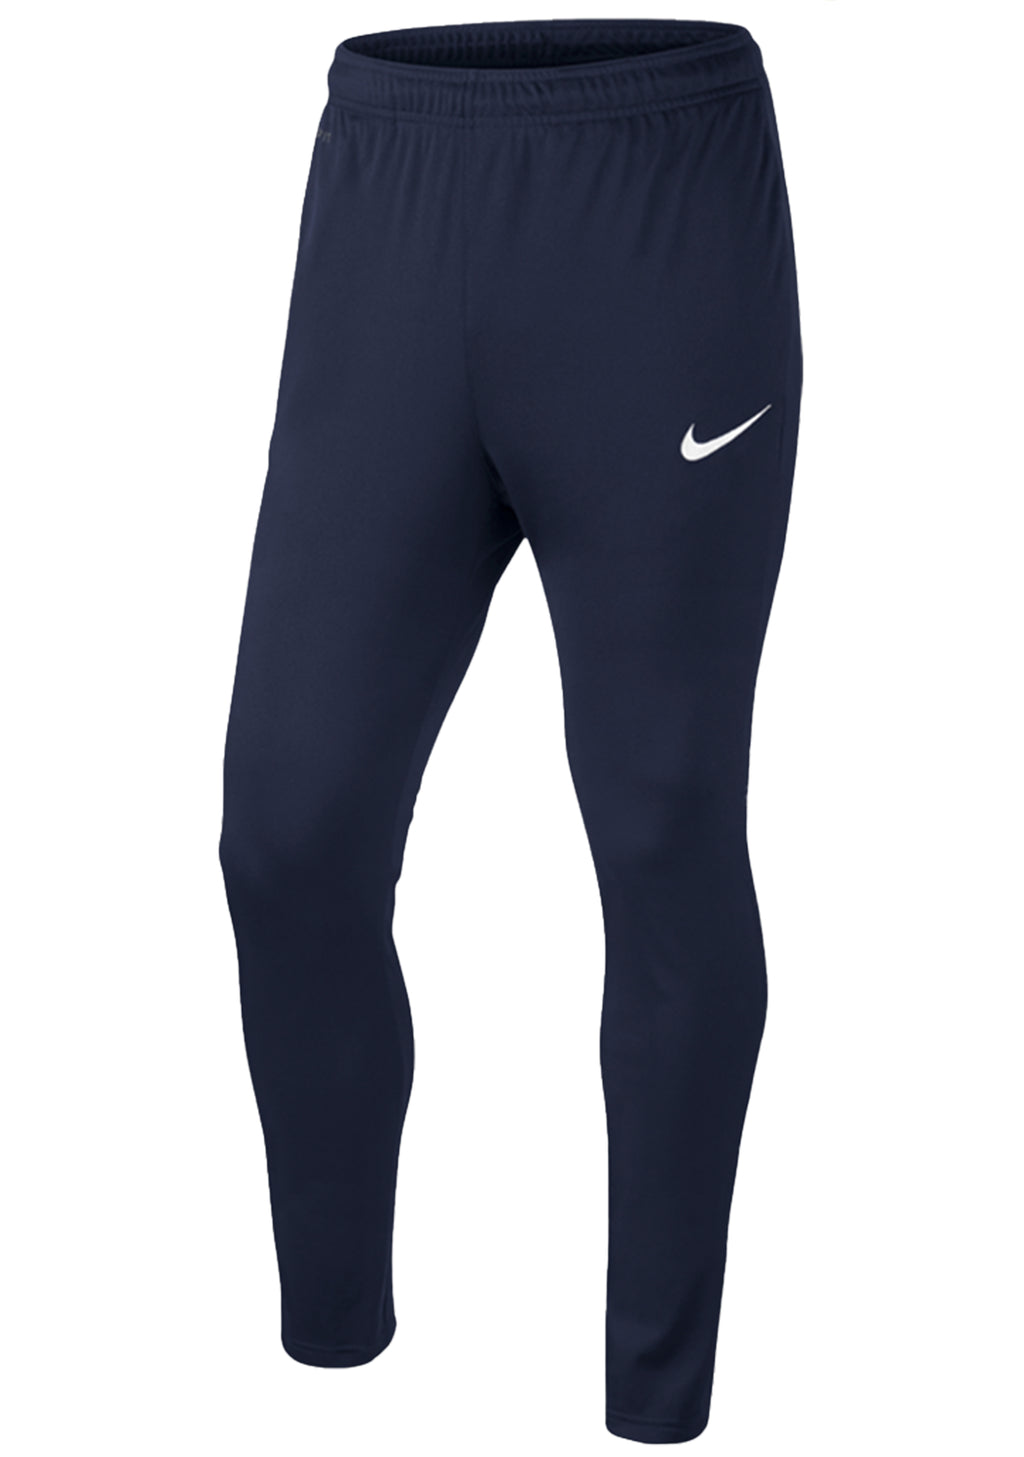 NIKE YOUTH ACADEMY 16 KNIT TRACKSUIT PANTS <br> 808760